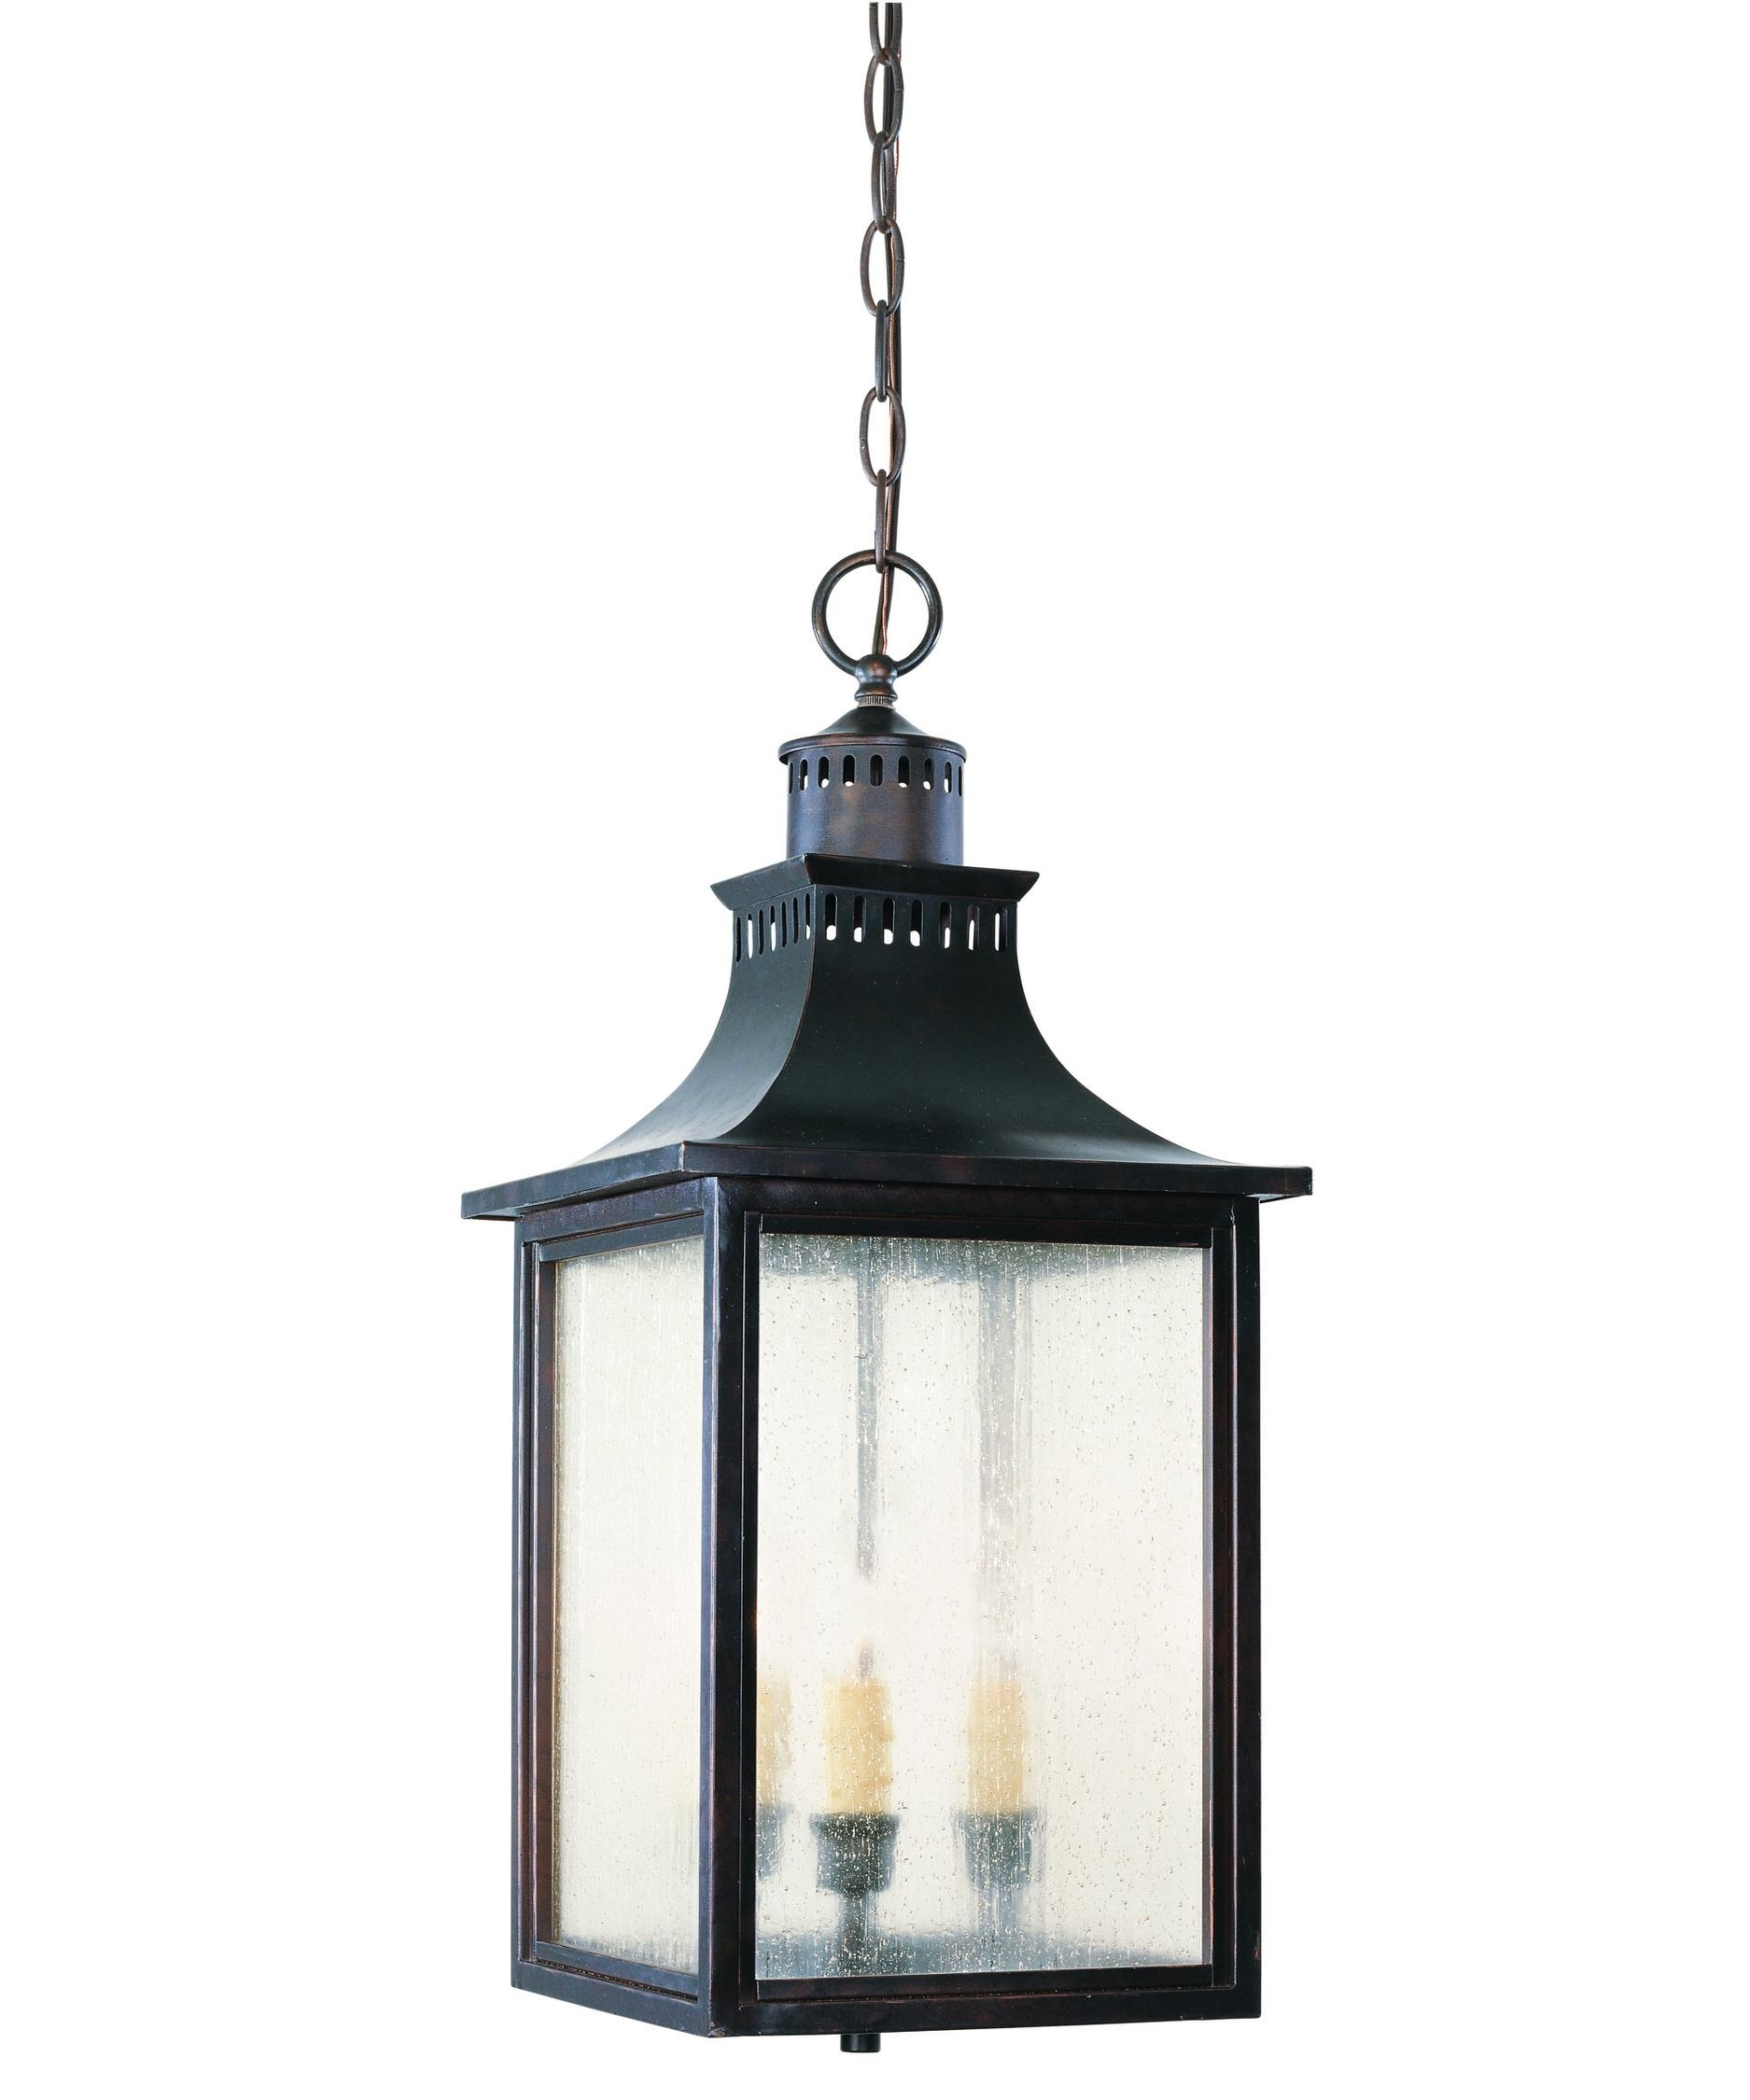 Most Recent Outdoor Electric Lanterns Pertaining To Savoy House 5 256 Monte Grande 10 Inch Wide 3 Light Outdoor Hanging (View 11 of 20)